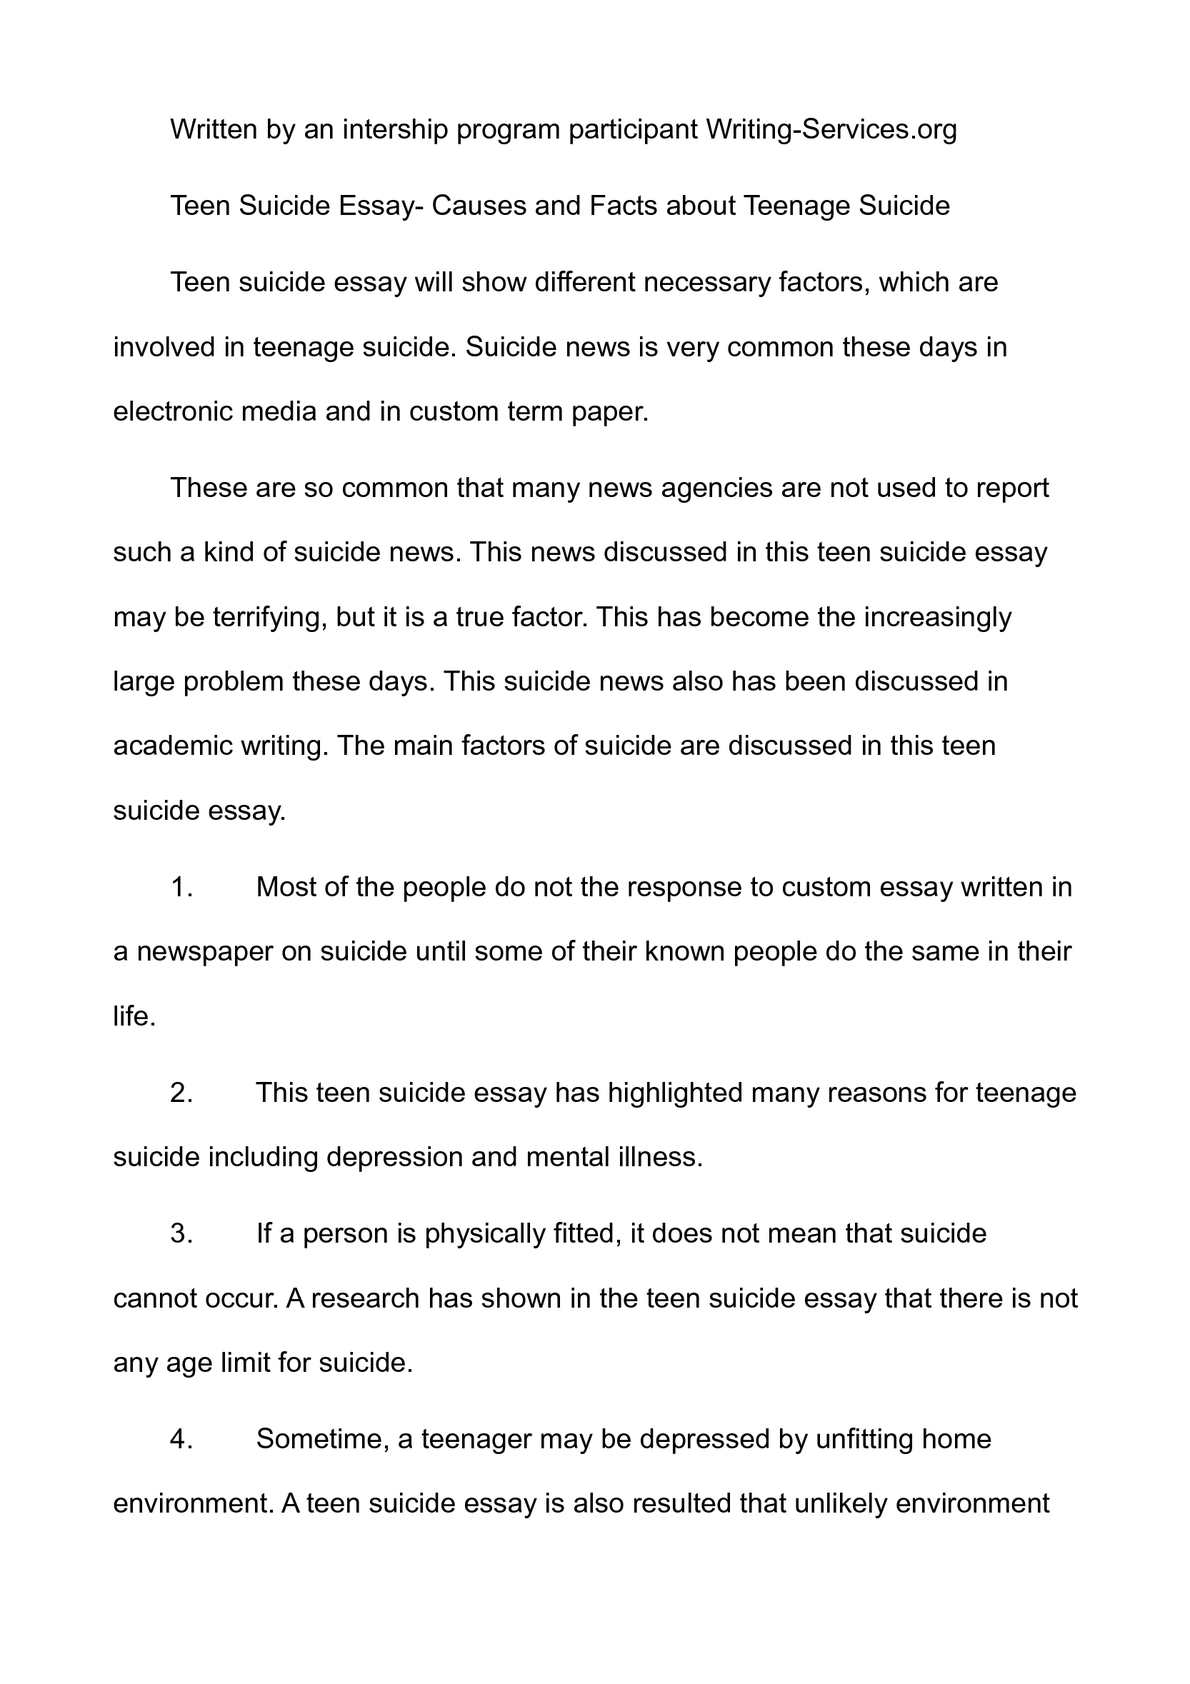 essay writing on newspaper calamatildecopyo teen suicide essay causes and facts about teenage suicide